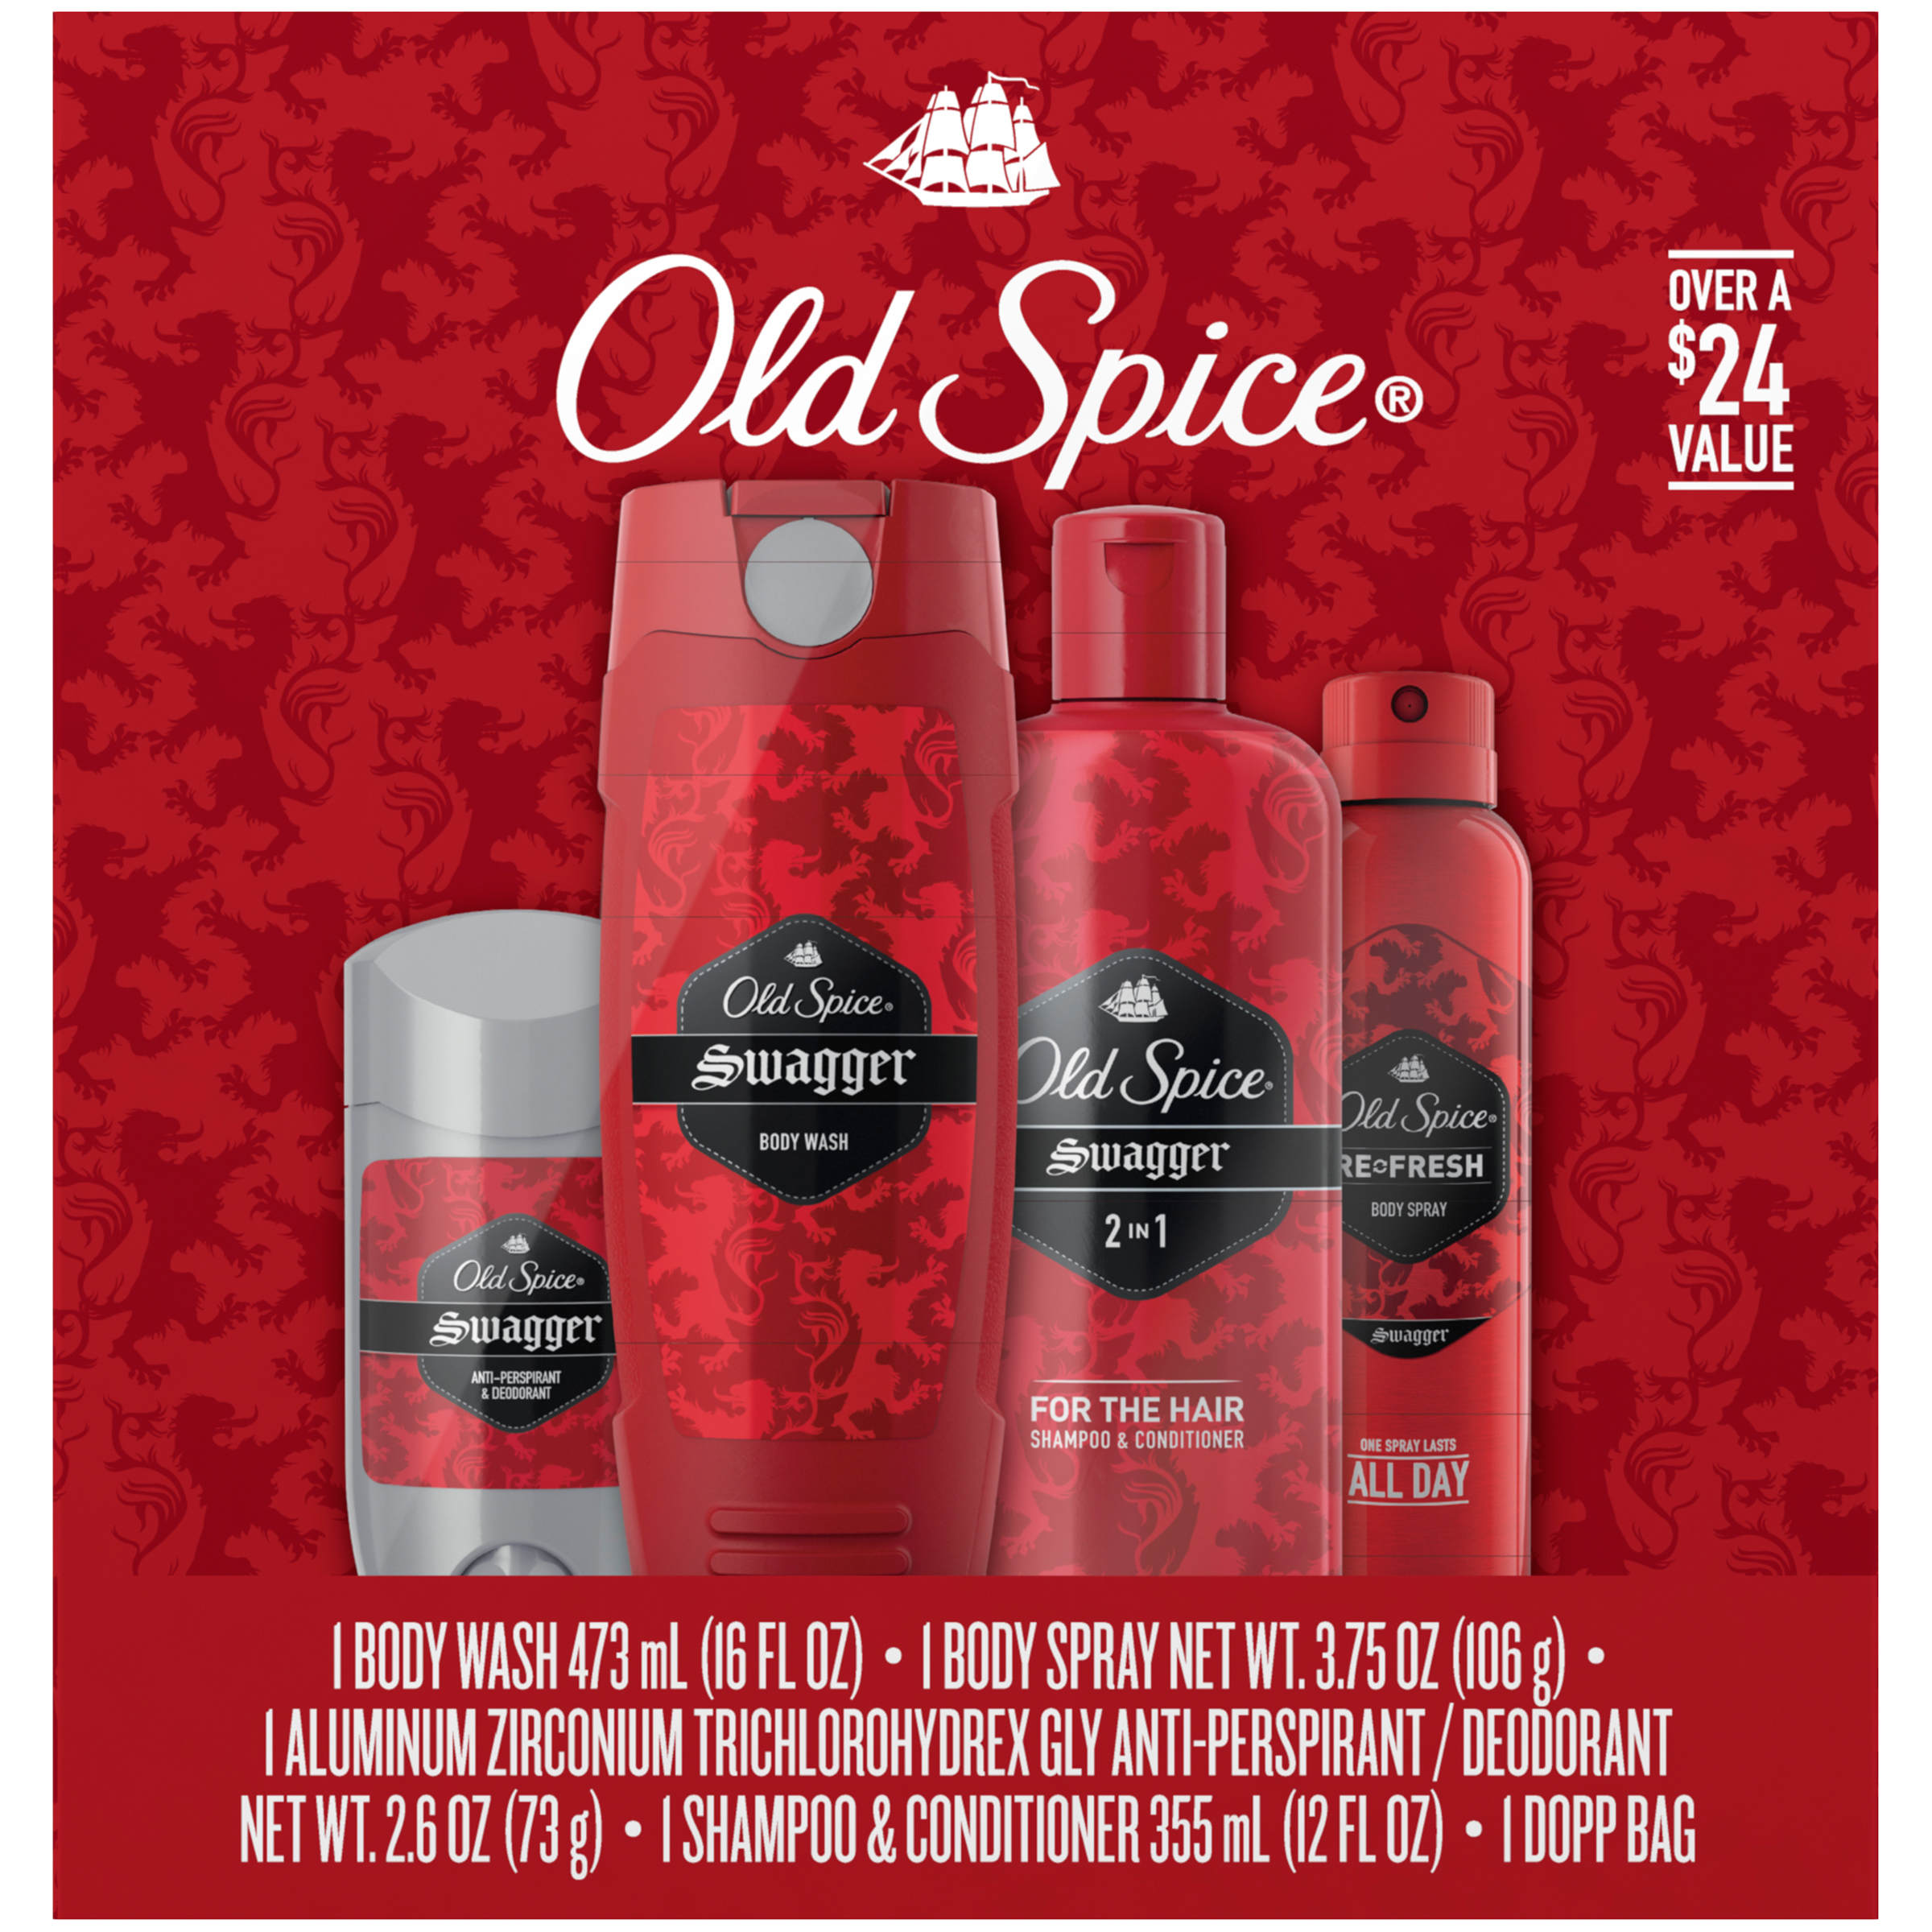 Old Spice Swagger Red Zone Body Wash Body Spray Deodorant u0026 Sh&oo Gift Pack - 5 Pc - Walmart.com  sc 1 st  Walmart : old spice swagger gift sets - princetonregatta.org